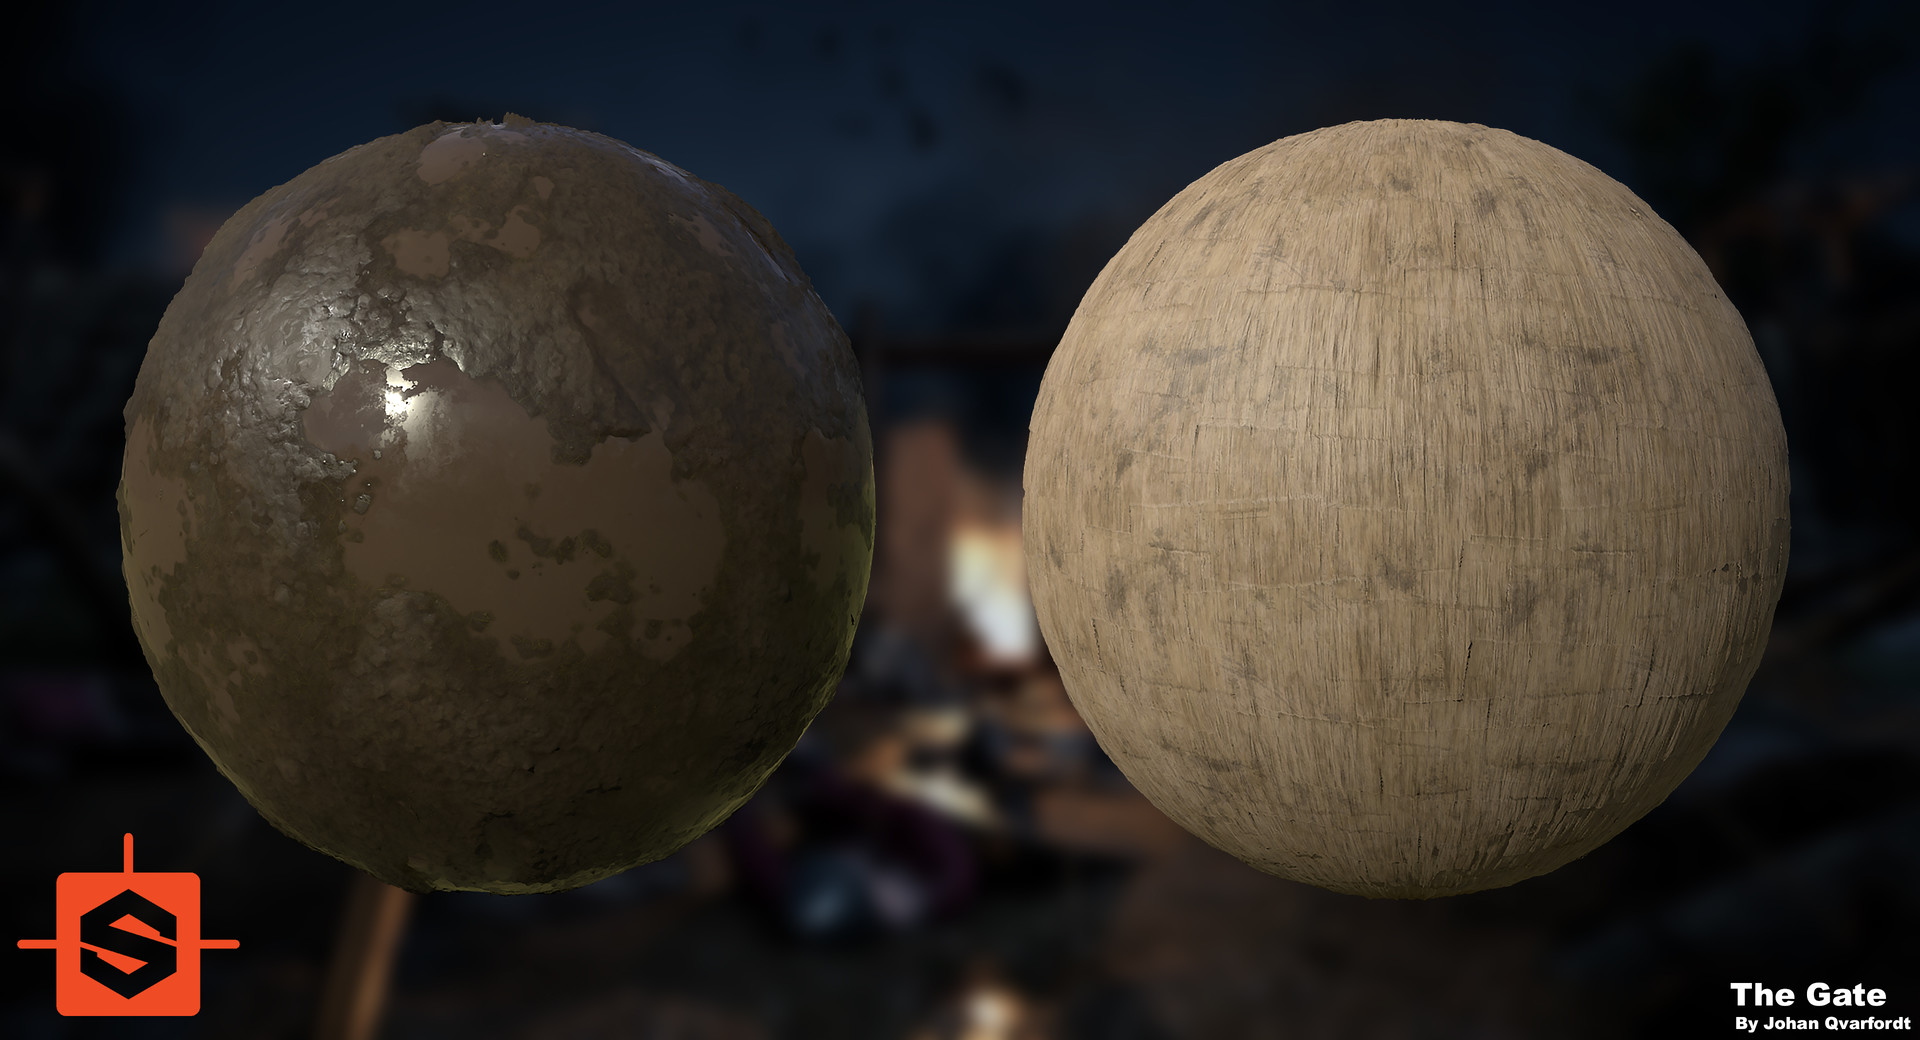 I did not end up working alot with Substance Designer during this project since I chose to try out Mixer instead, but these two materials were created from scratch and used during texturing.